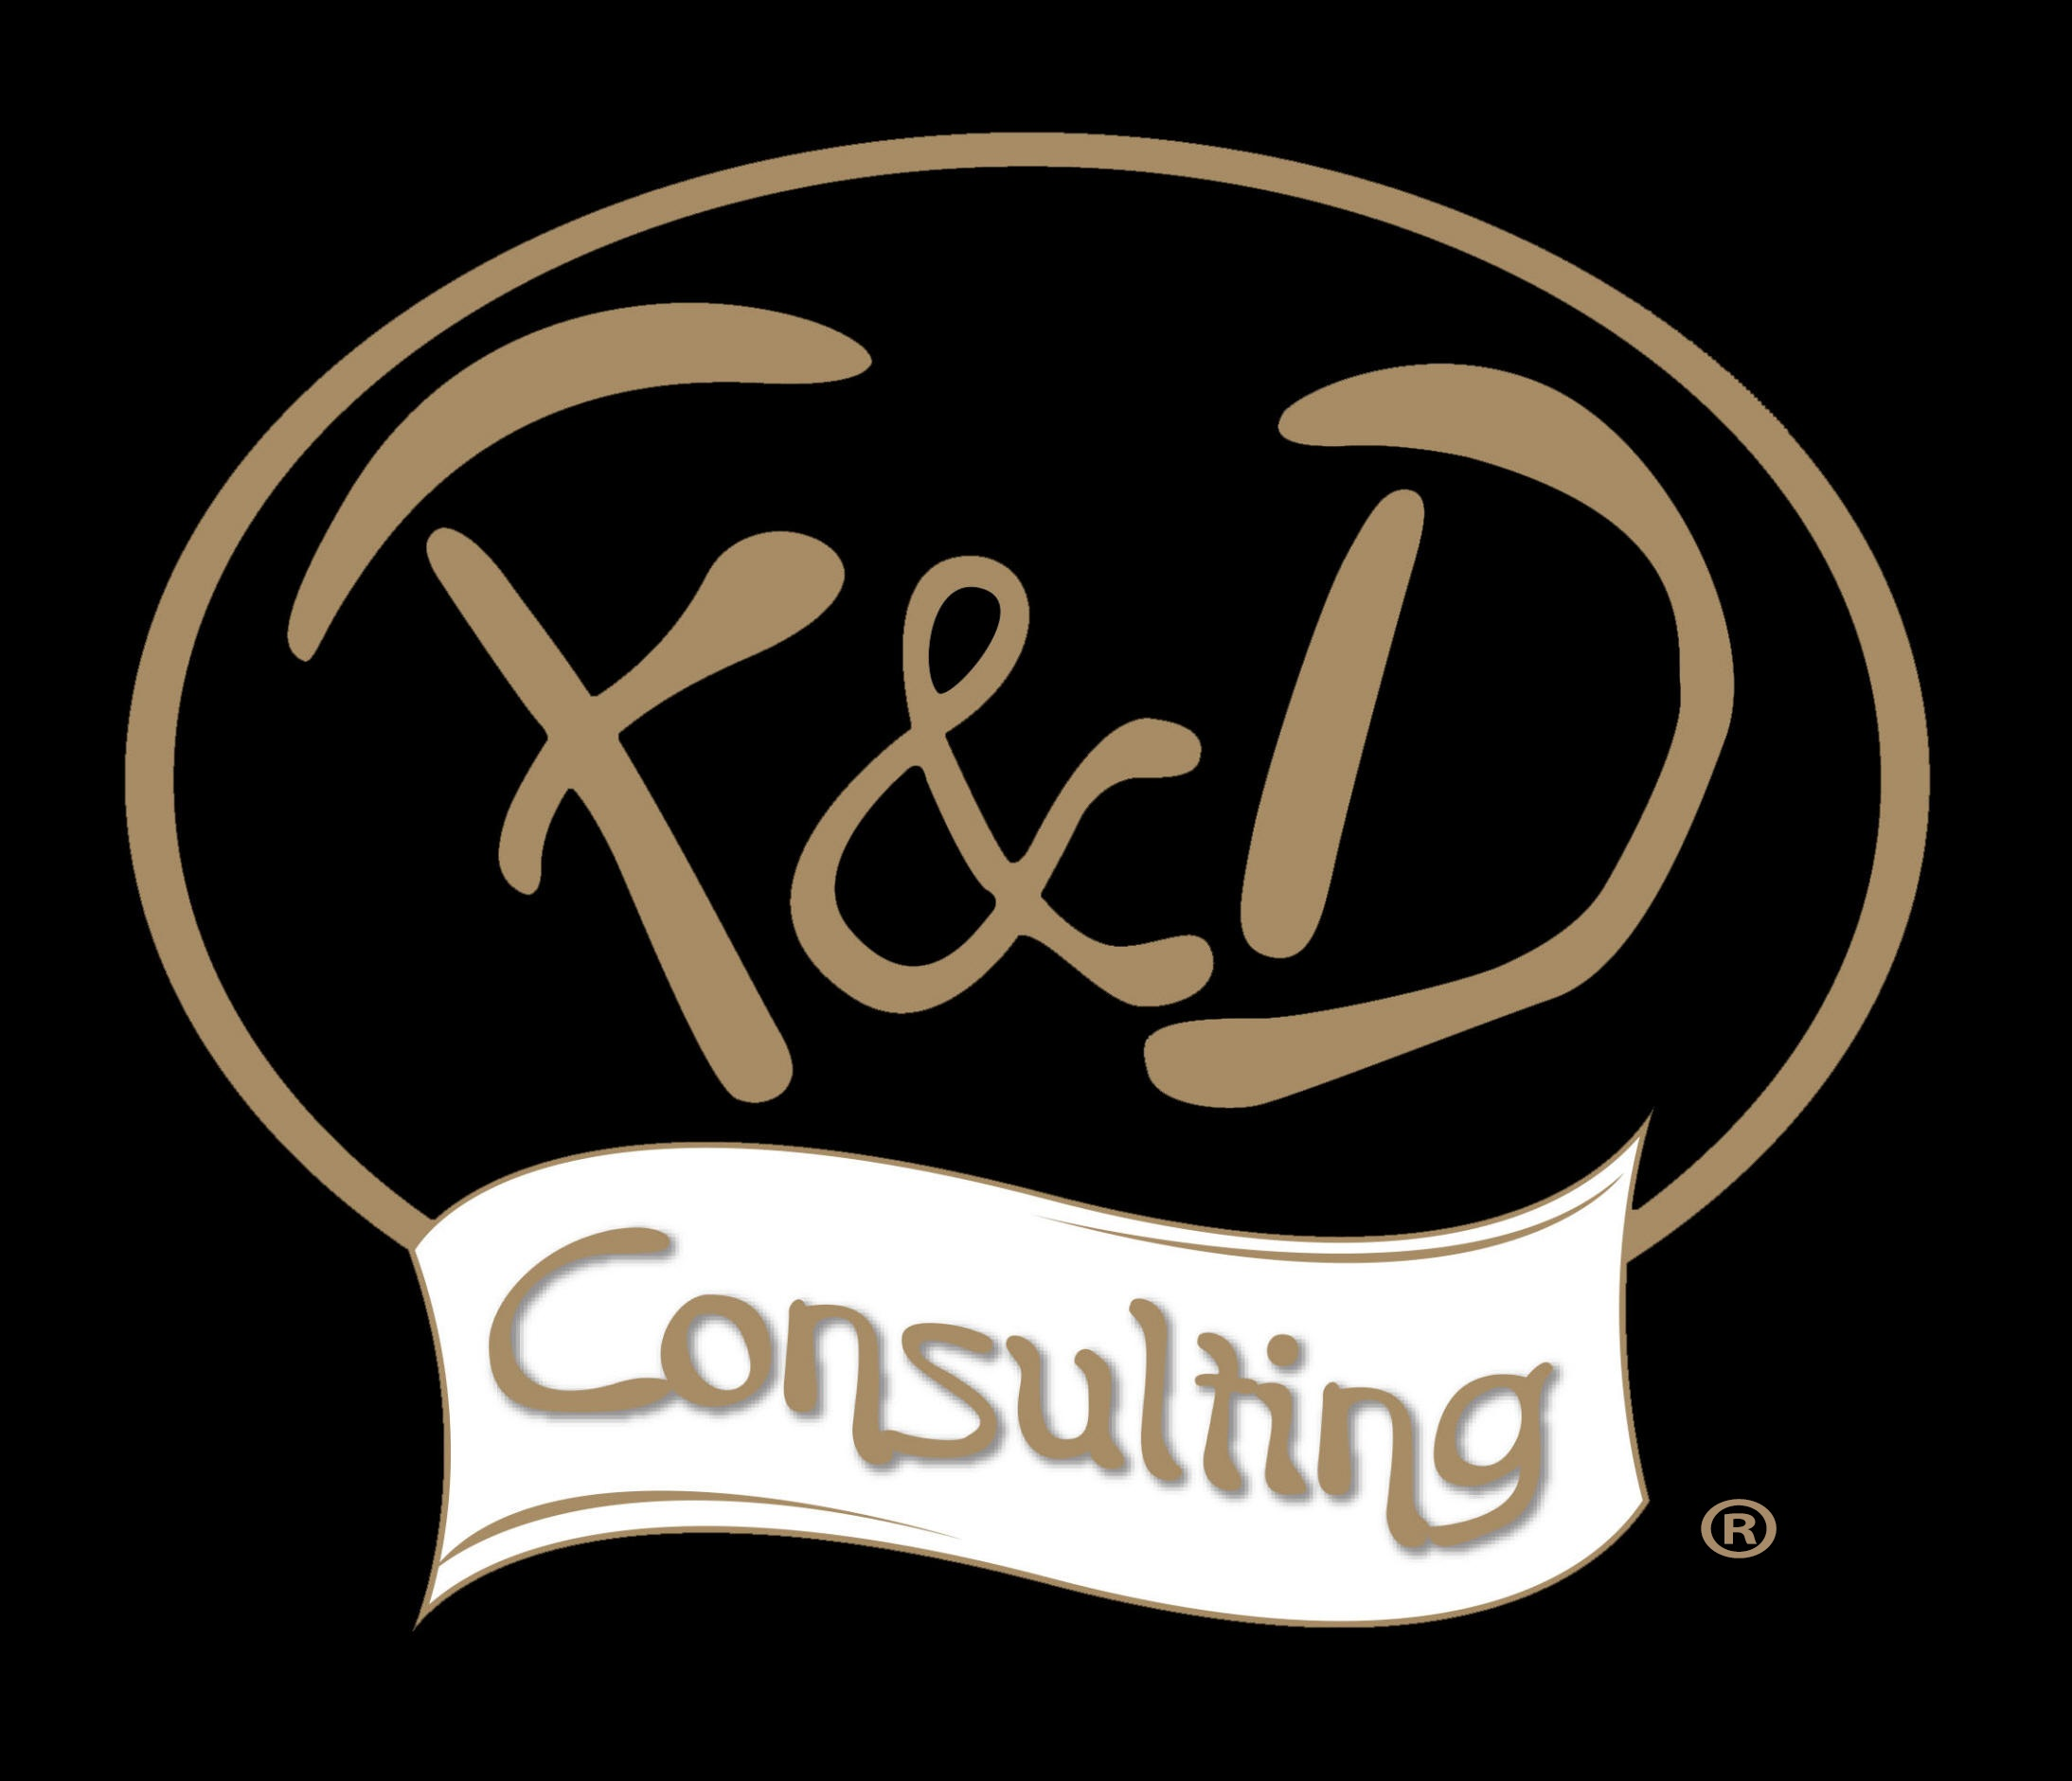 Food & Drink Consulting